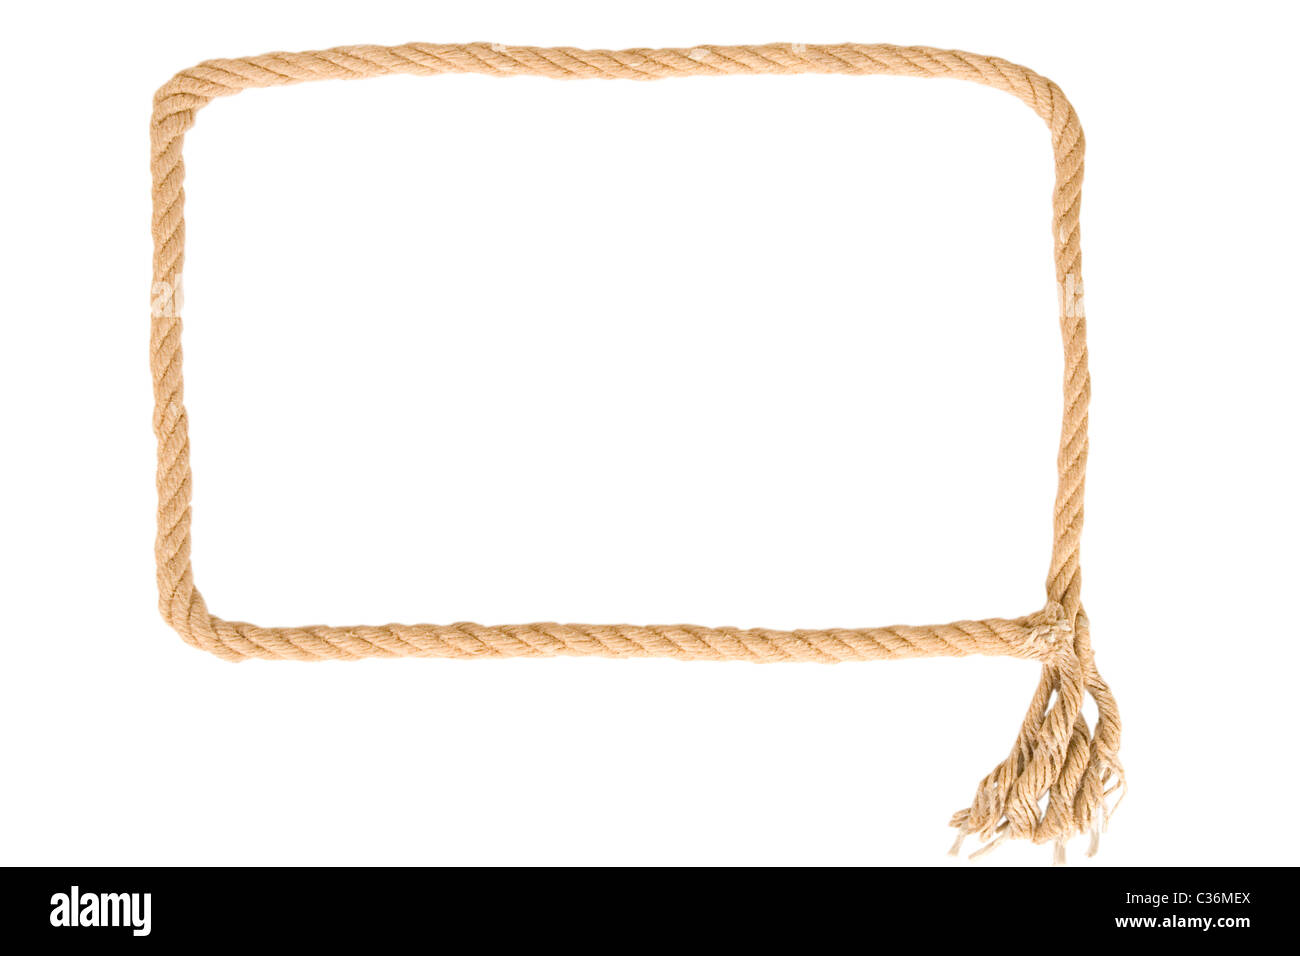 frame made from rope on white background - Stock Image